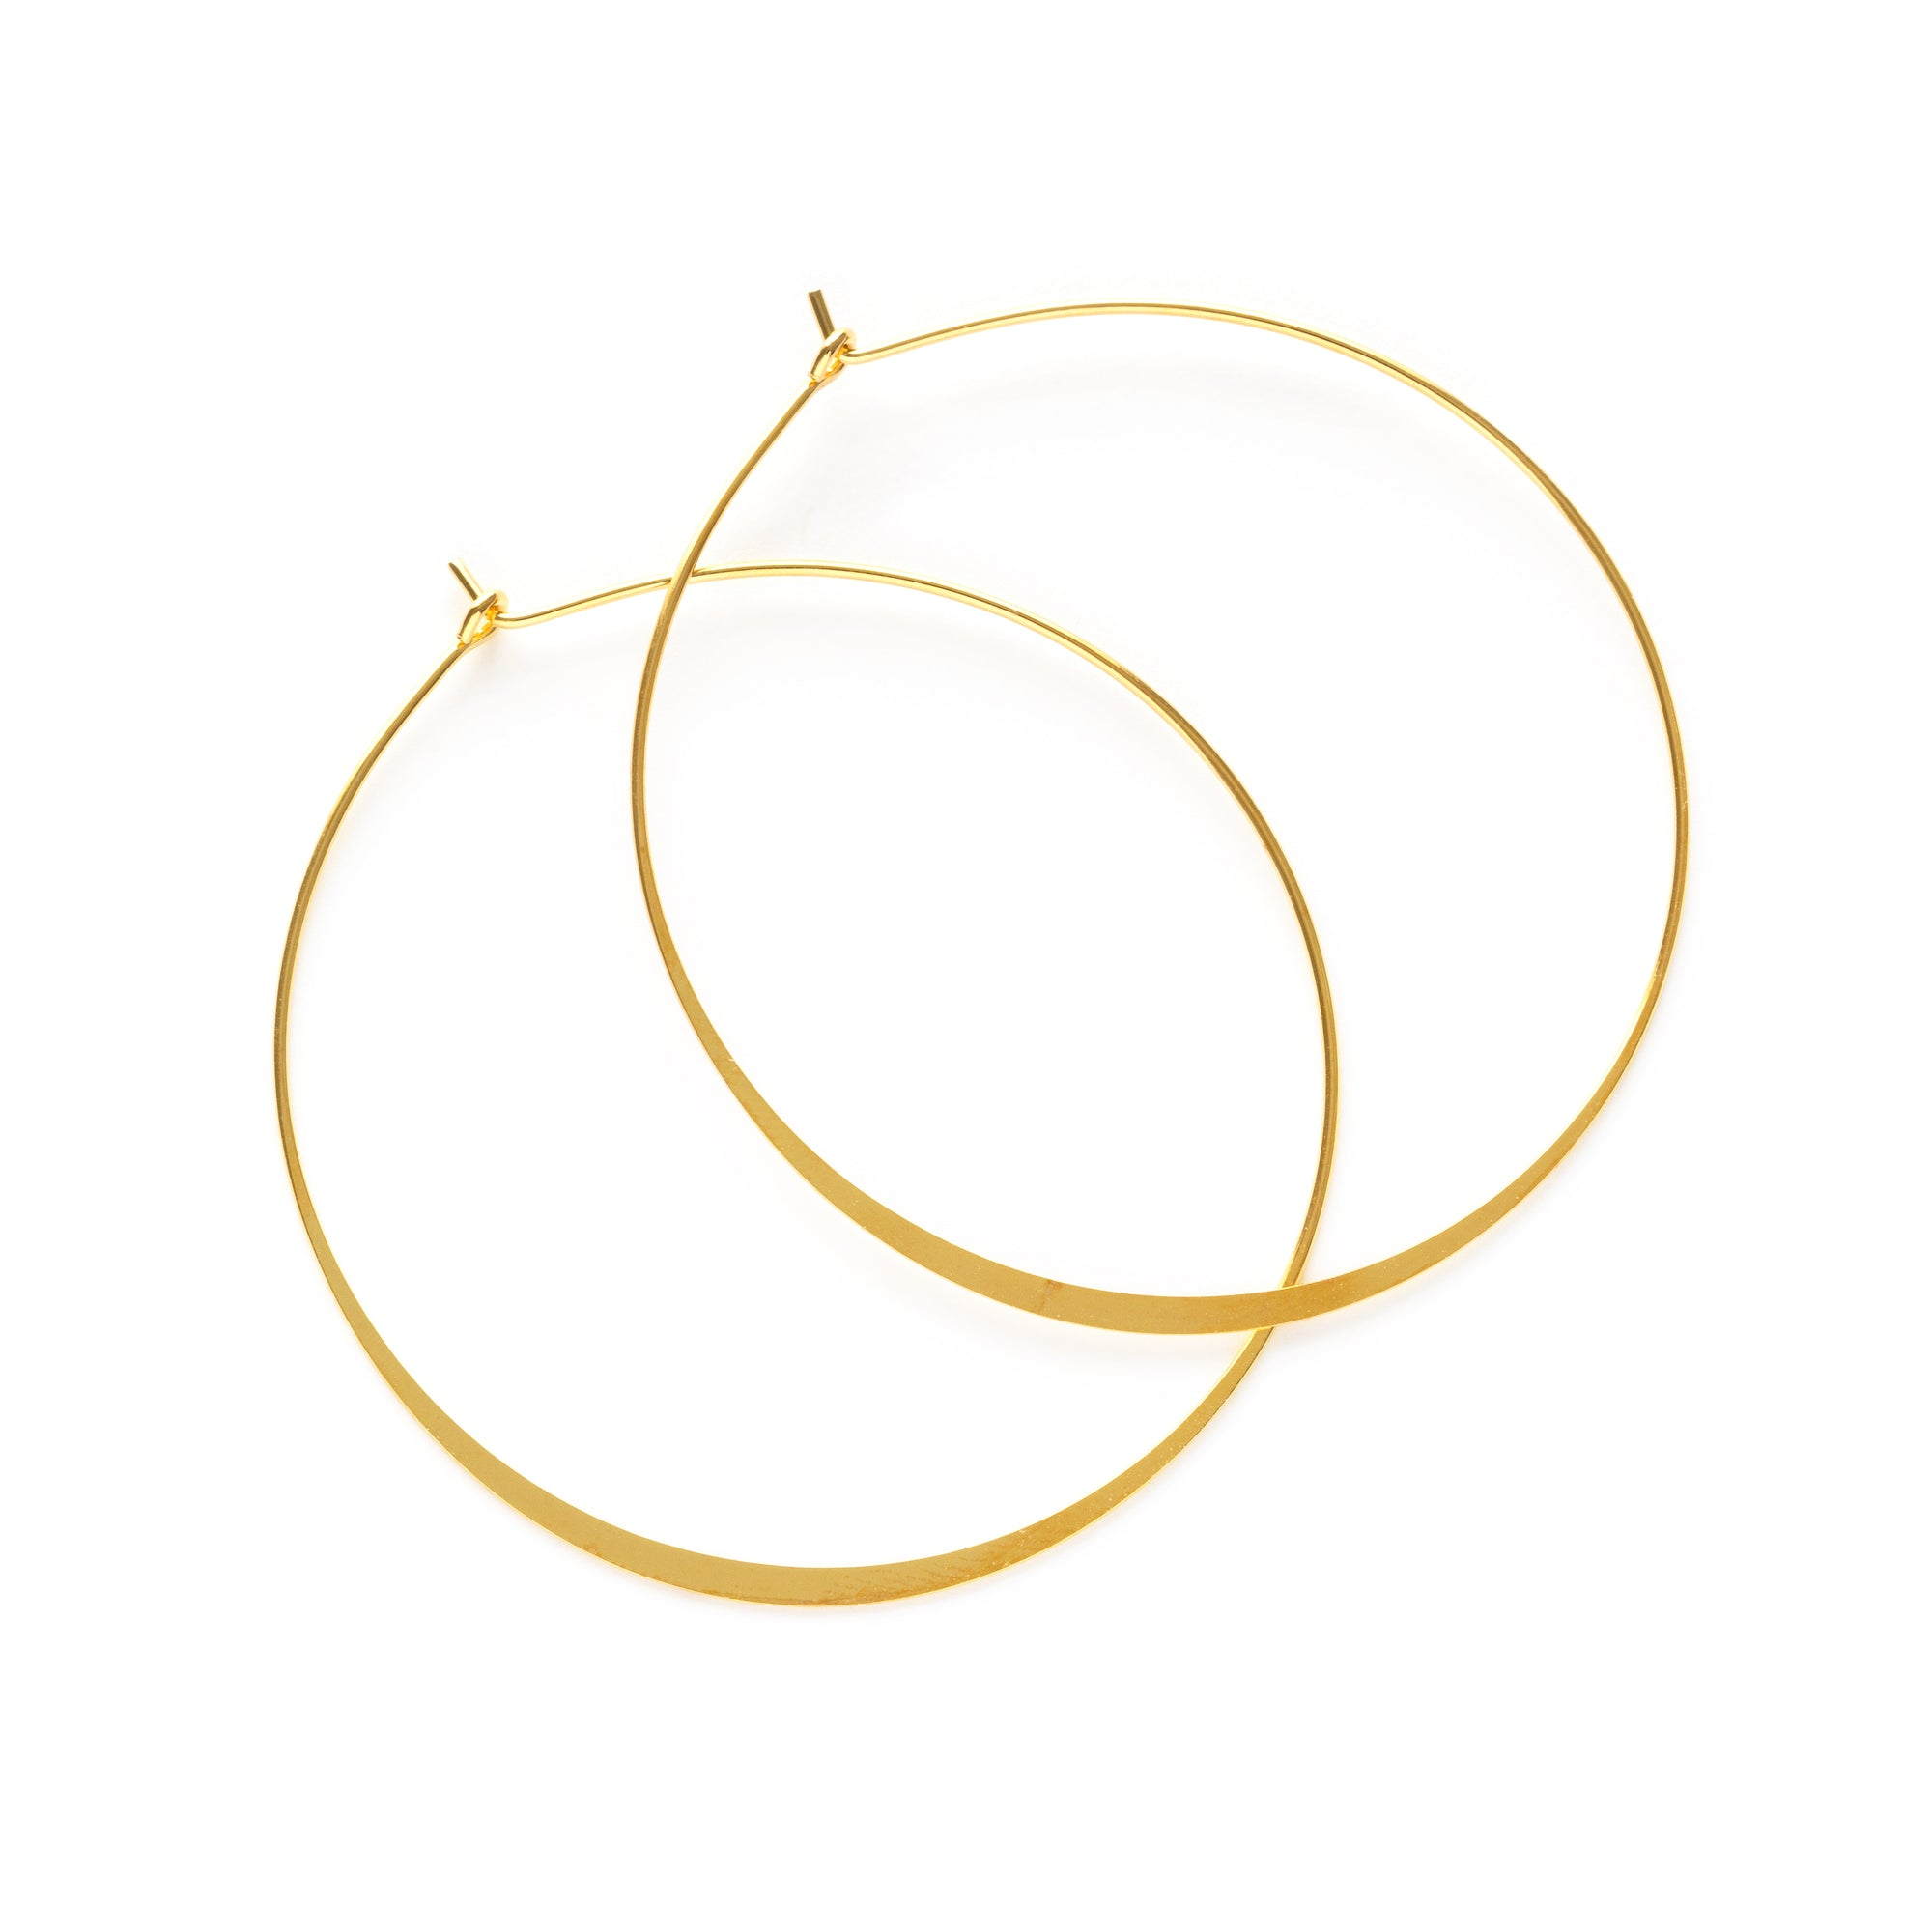 Amano Studio 2 Inch Gold Hoops